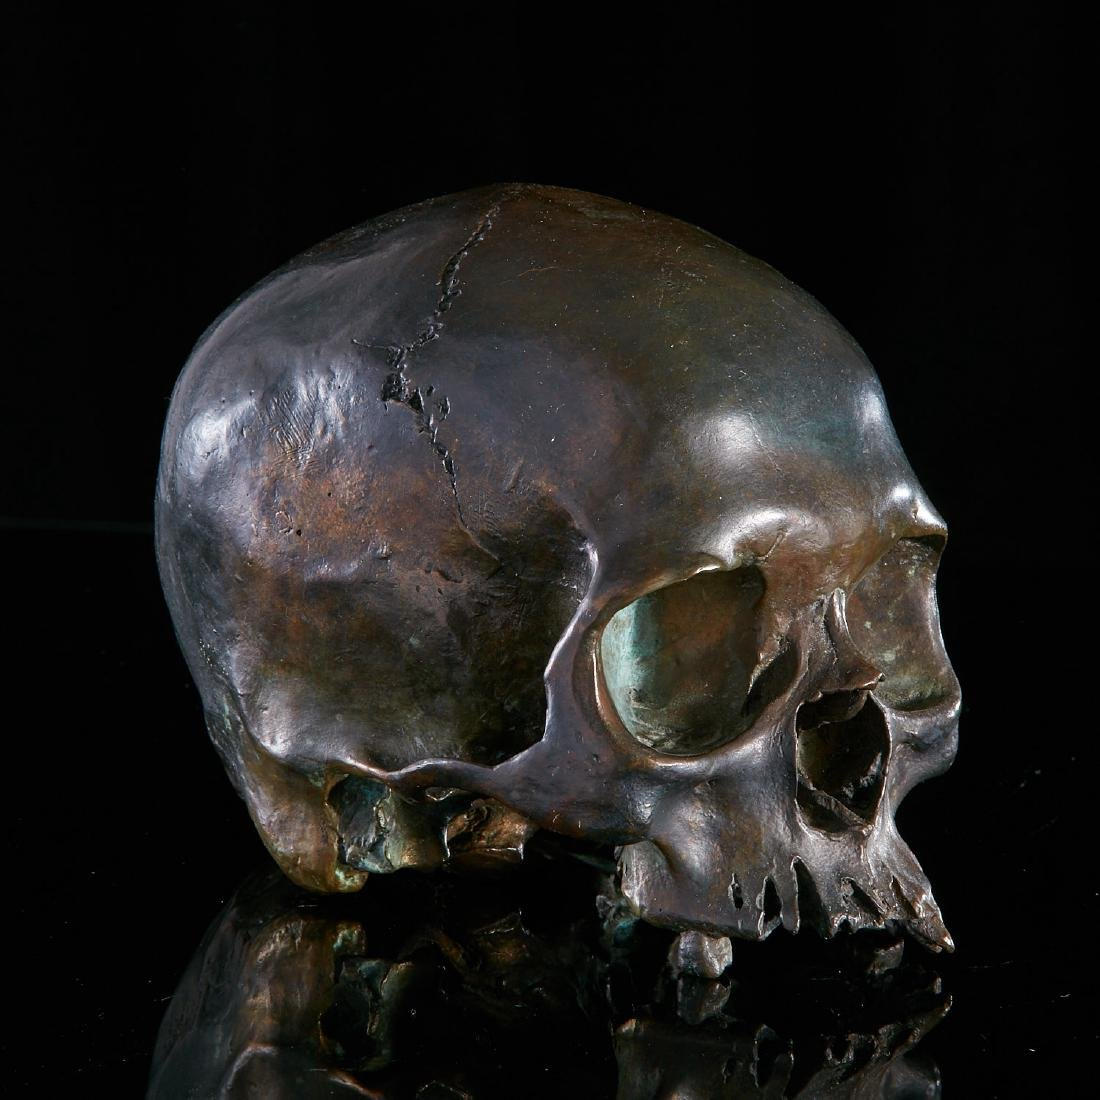 Exquisite patinated bronze skull model